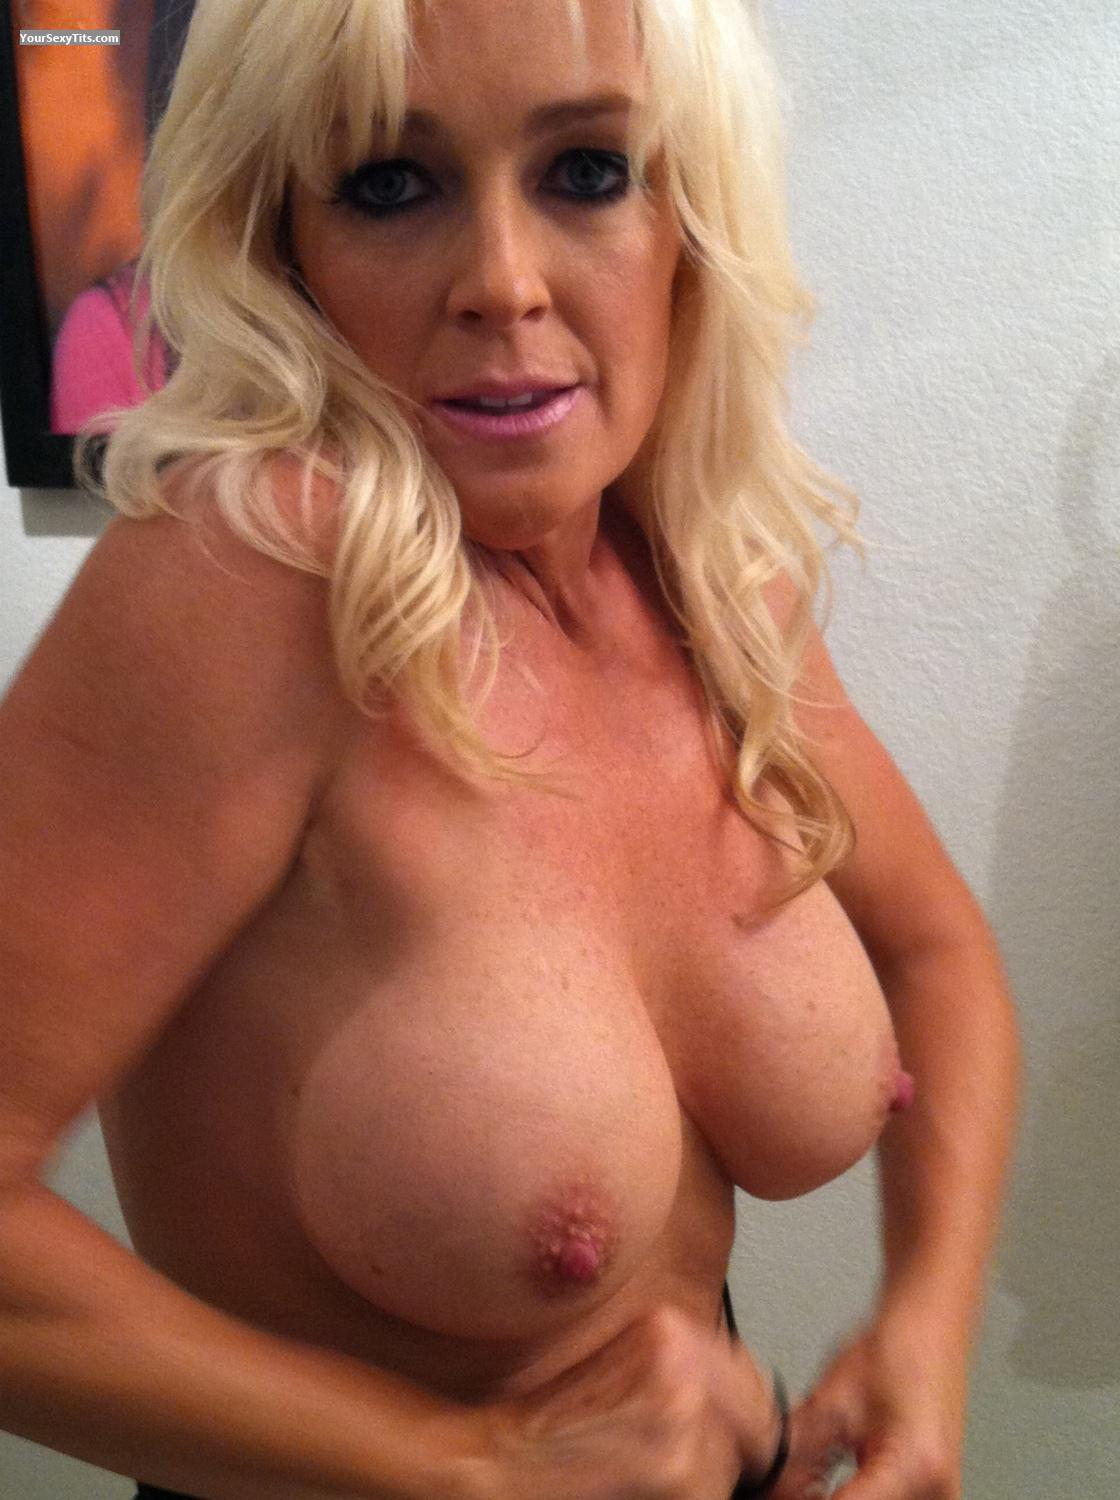 Tit Flash: Big Tits By IPhone - Topless Thotchic from United States